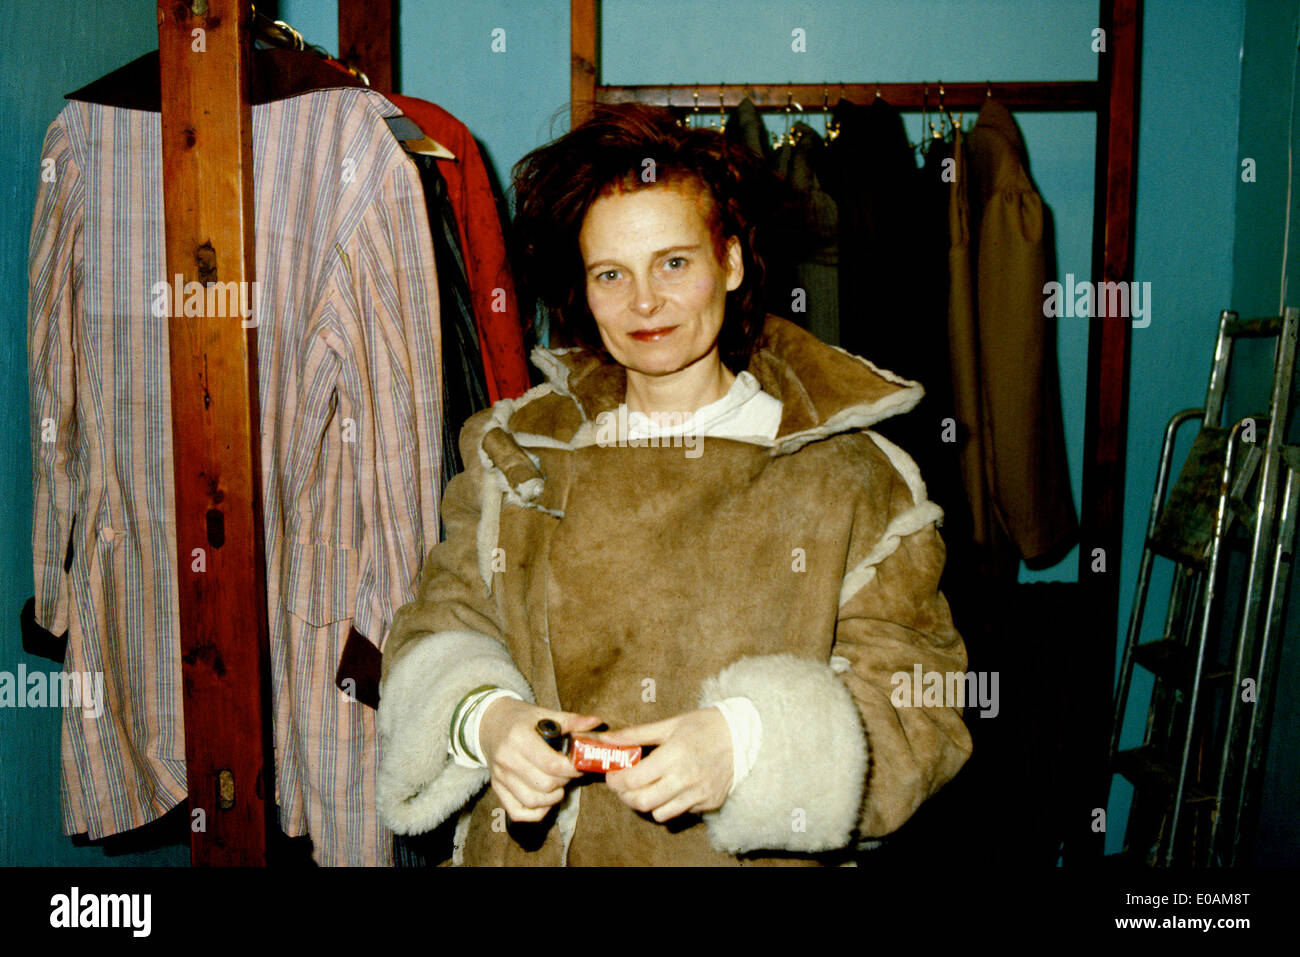 British fashion designer Vivienne Westwood in her Words End shop on the King's Road, Chelsea, London - Stock Image